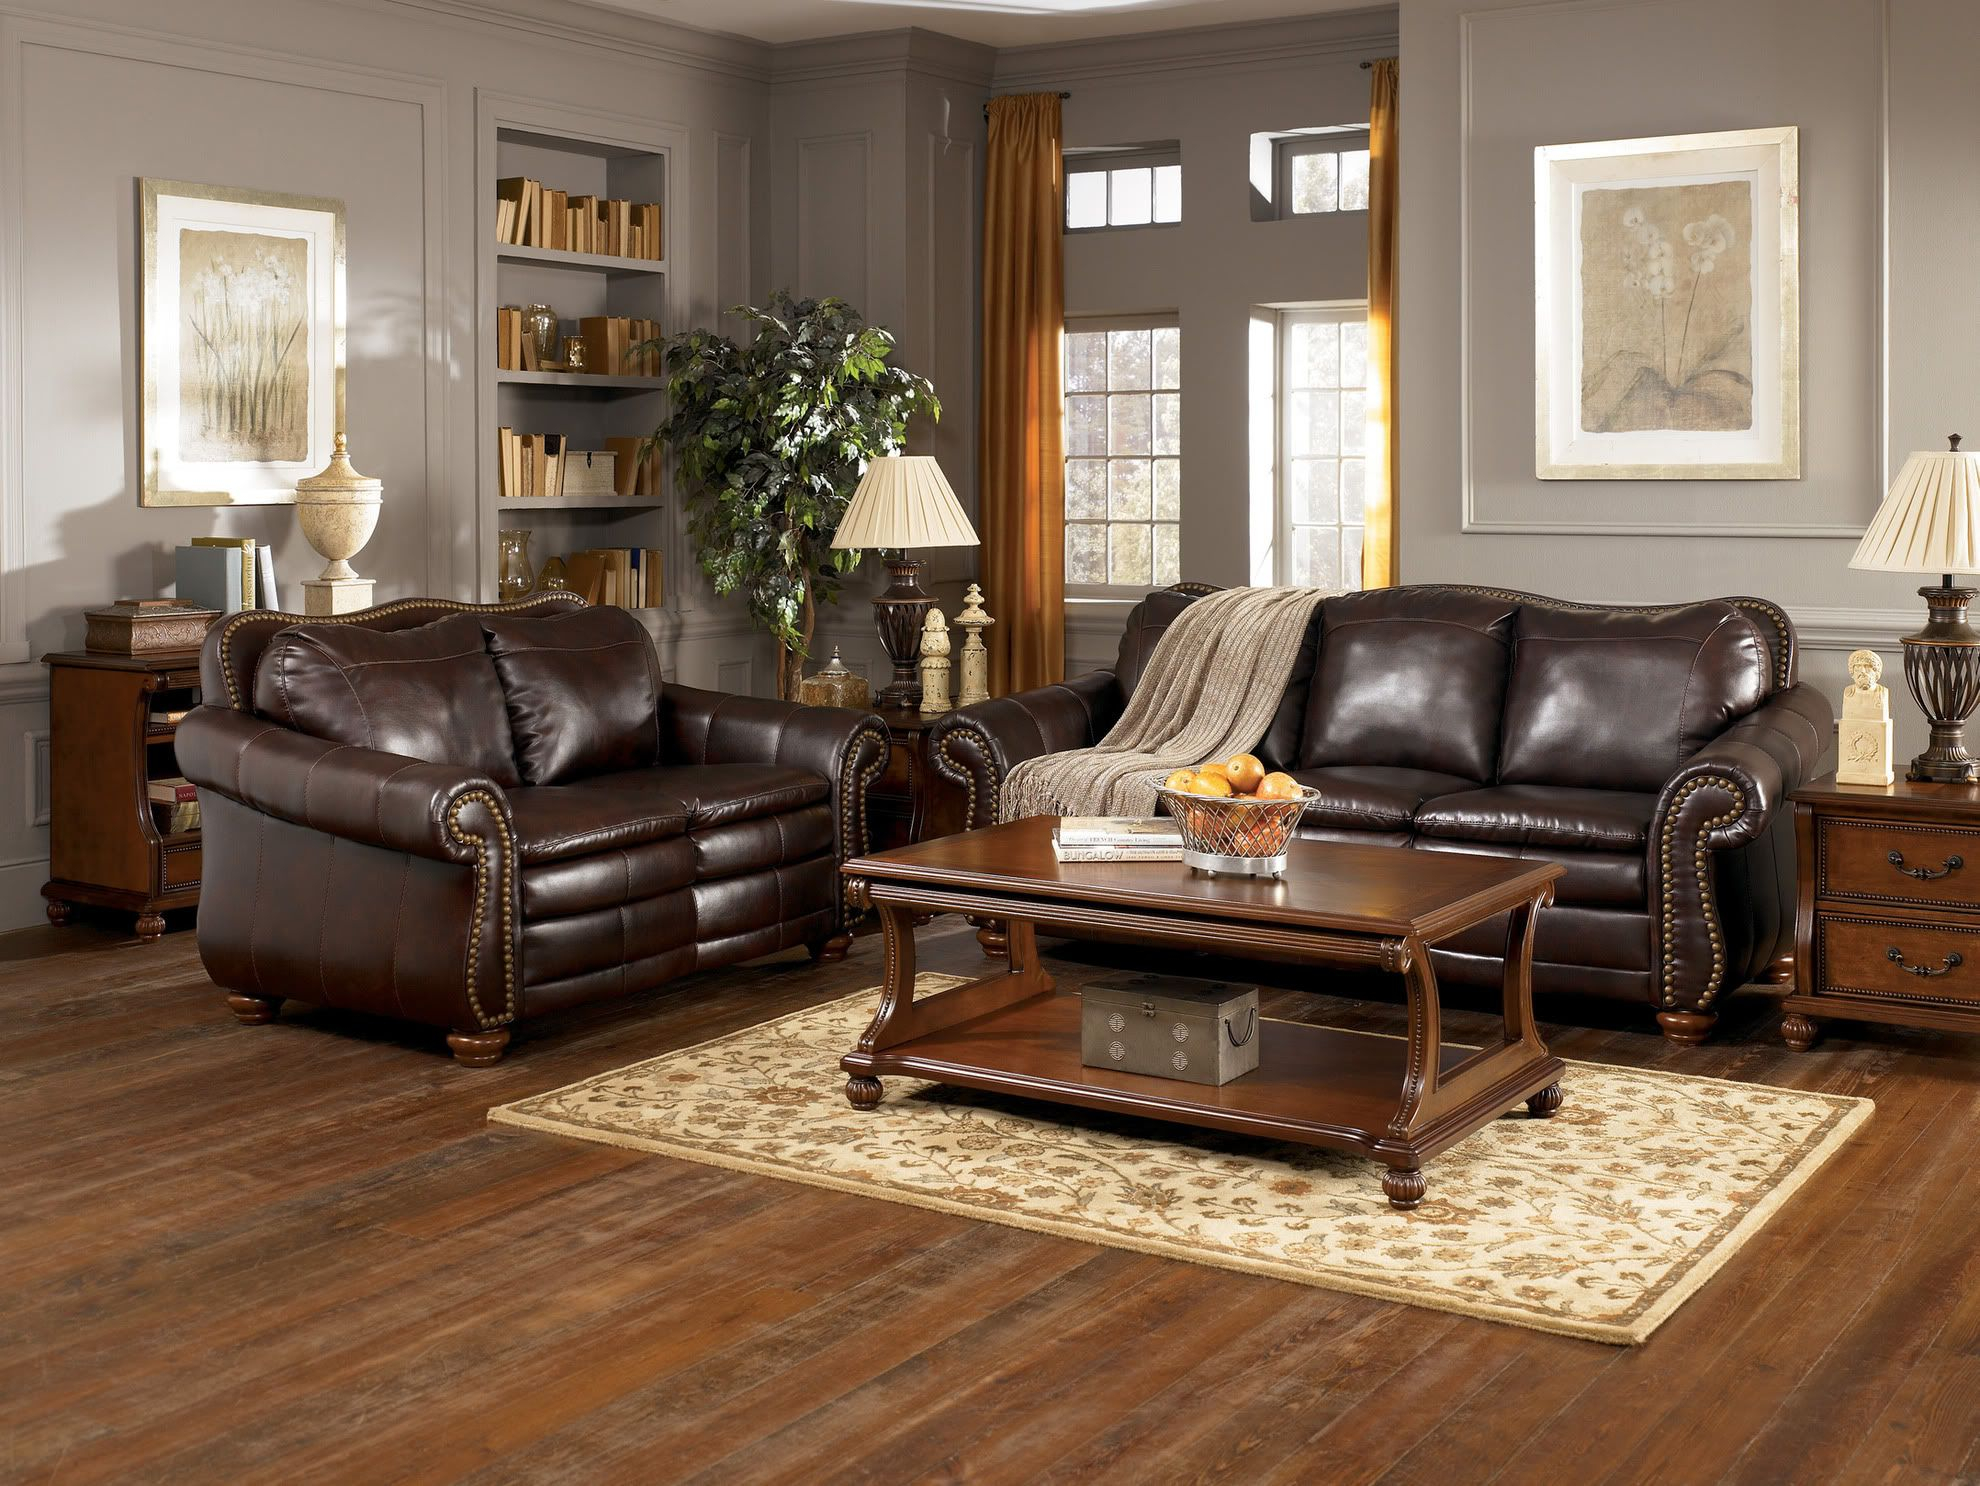 15 Gorgeous Grey-Green Living Room Inspirations   Brown with regard to Paint Colors For Living Room Walls With Dark Furniture